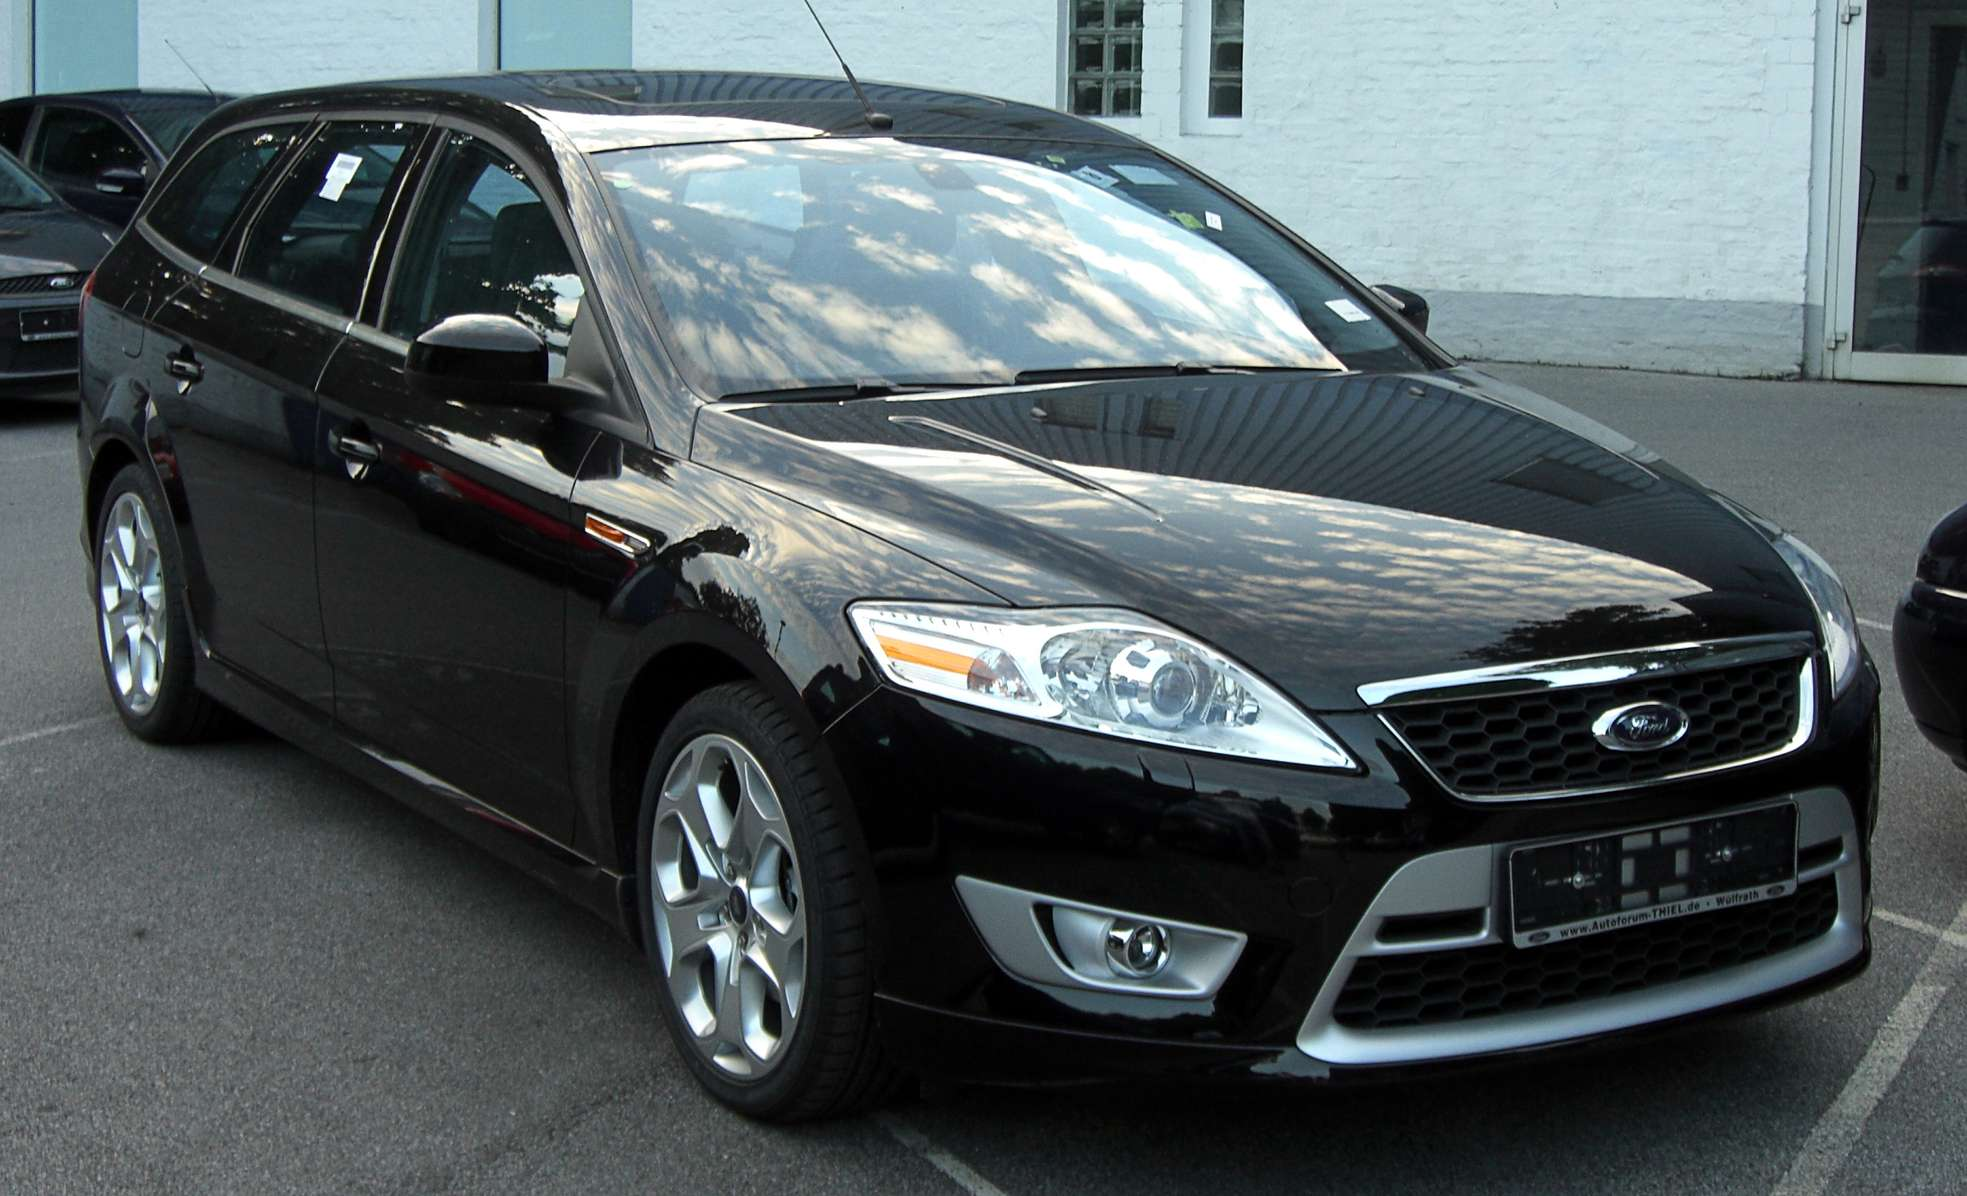 Ford Mondeo #7088531